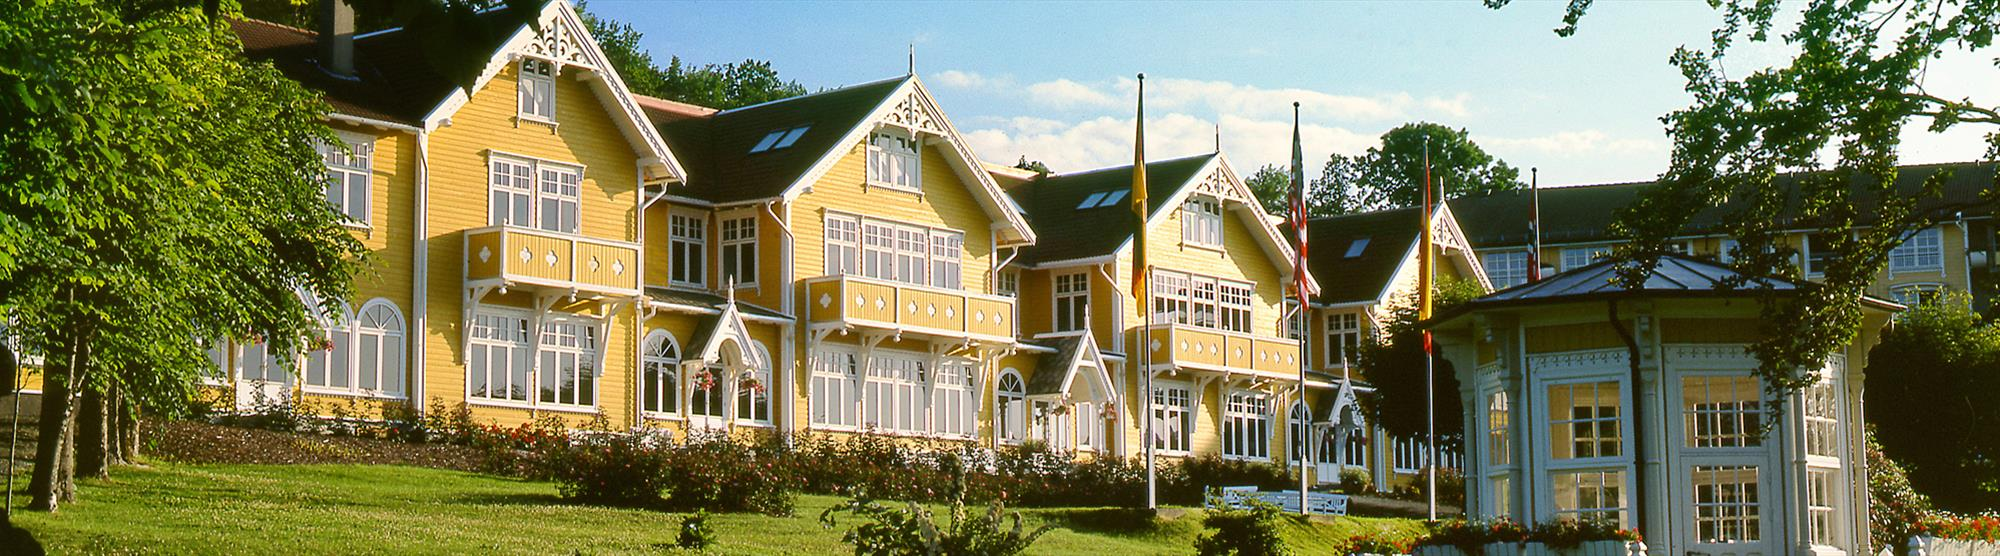 Stay in a fjord hotel in beautiful surroundings close to Bergen.